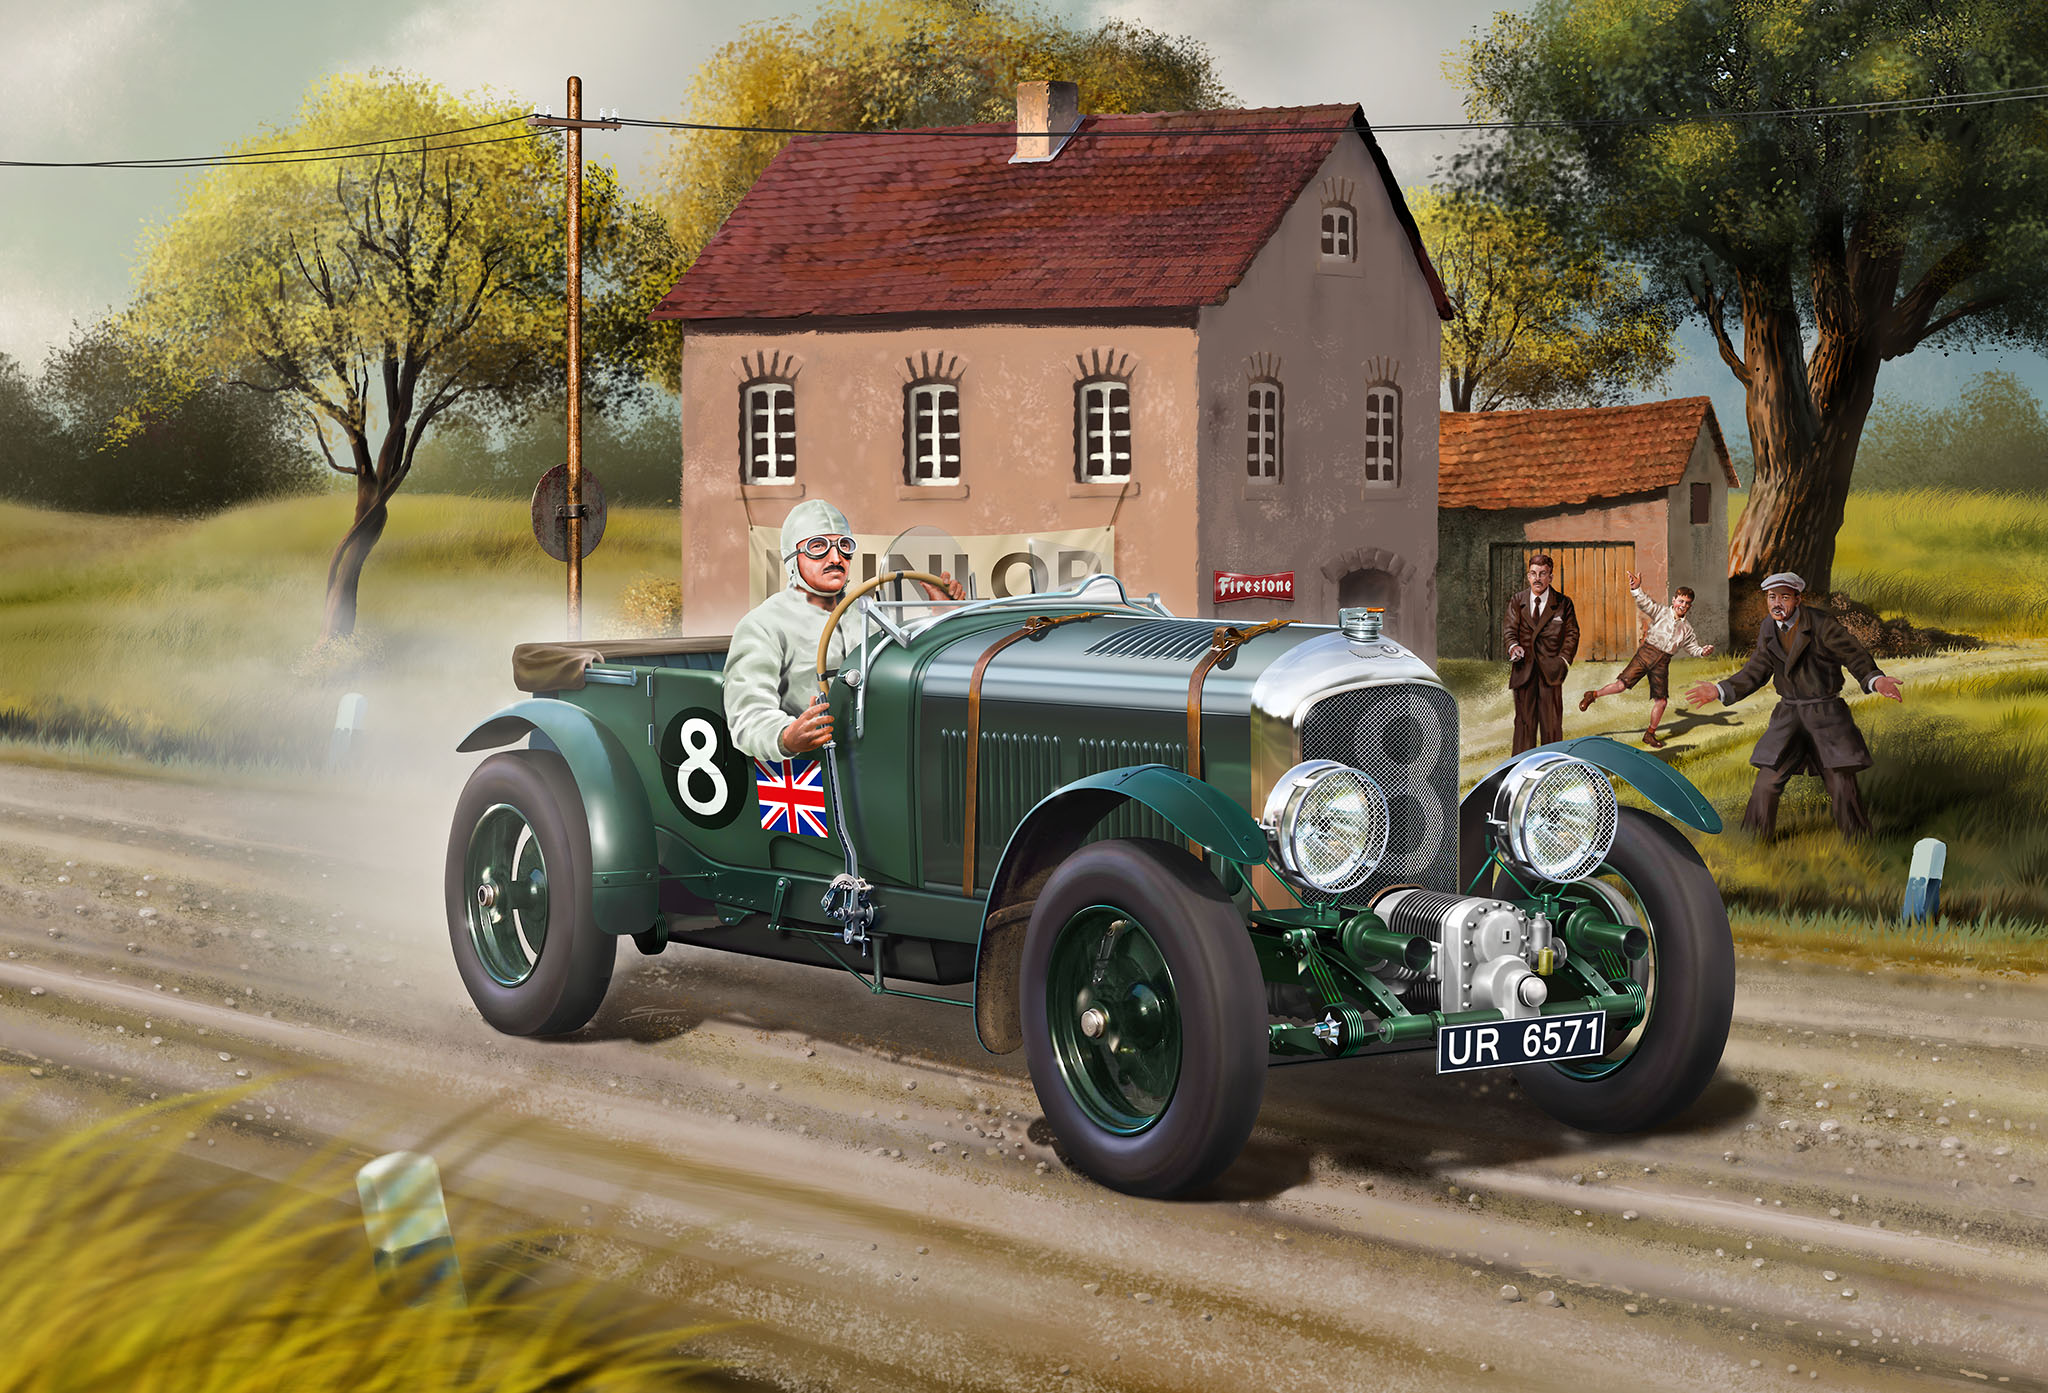 rc car model shop with Bentley 4 5l Blower on 121069006389 moreover Hawker Typhoon Detail Photos also Uebersicht Von Stecker Buchsen Im Modellbau also Rat Rod Model 334710464 likewise Reely Dune Fighter Brushed 110 RC Model Car Electric Buggy 4WD RtR 24 GHz.